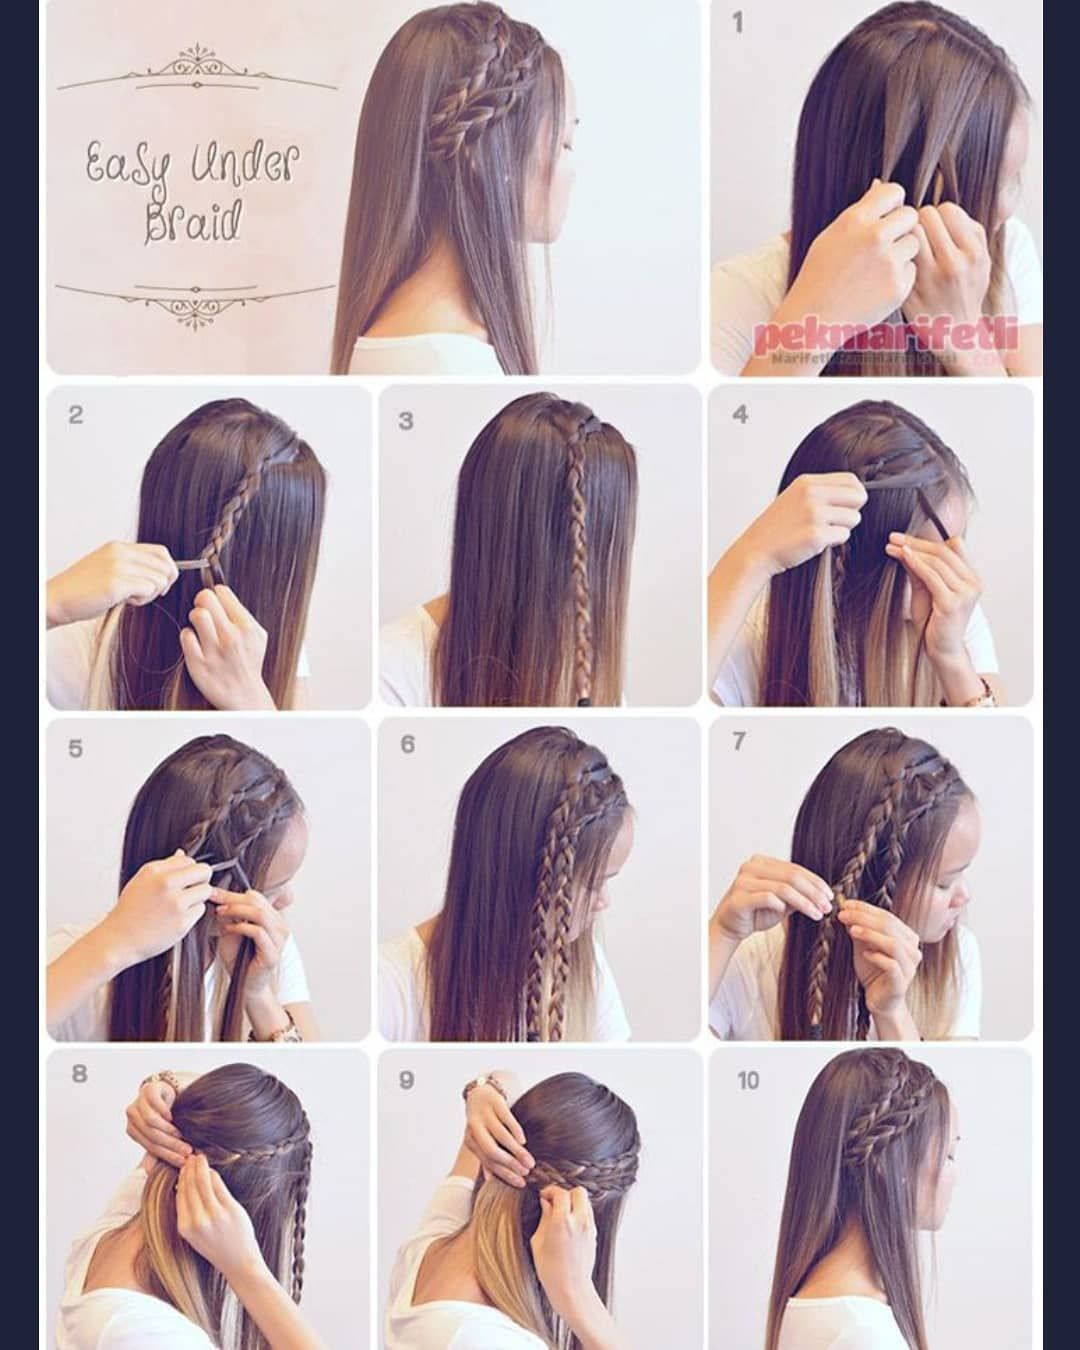 Get Ready For This Diwali With This Superb Easy Hairdo Hair Hairs Hairart Hairstylist Hairgoals Hairco Long Hair Styles Medium Hair Styles Hair Styles